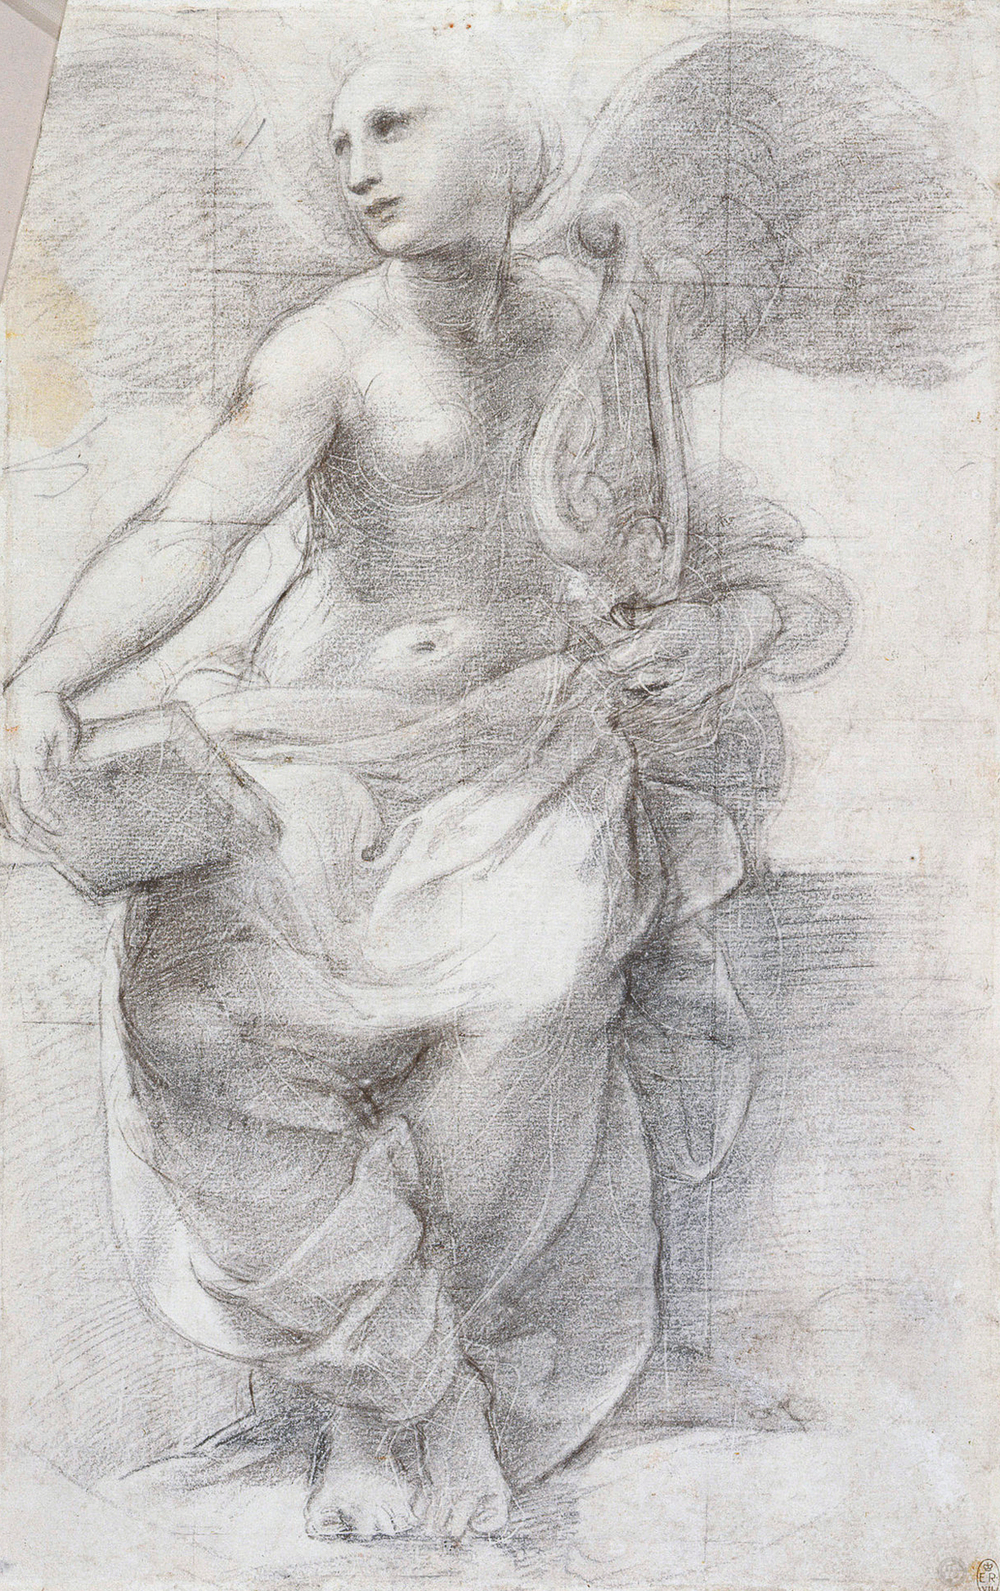 raphael-sketch-An-allegorical-figure-of-Poetry.jpg